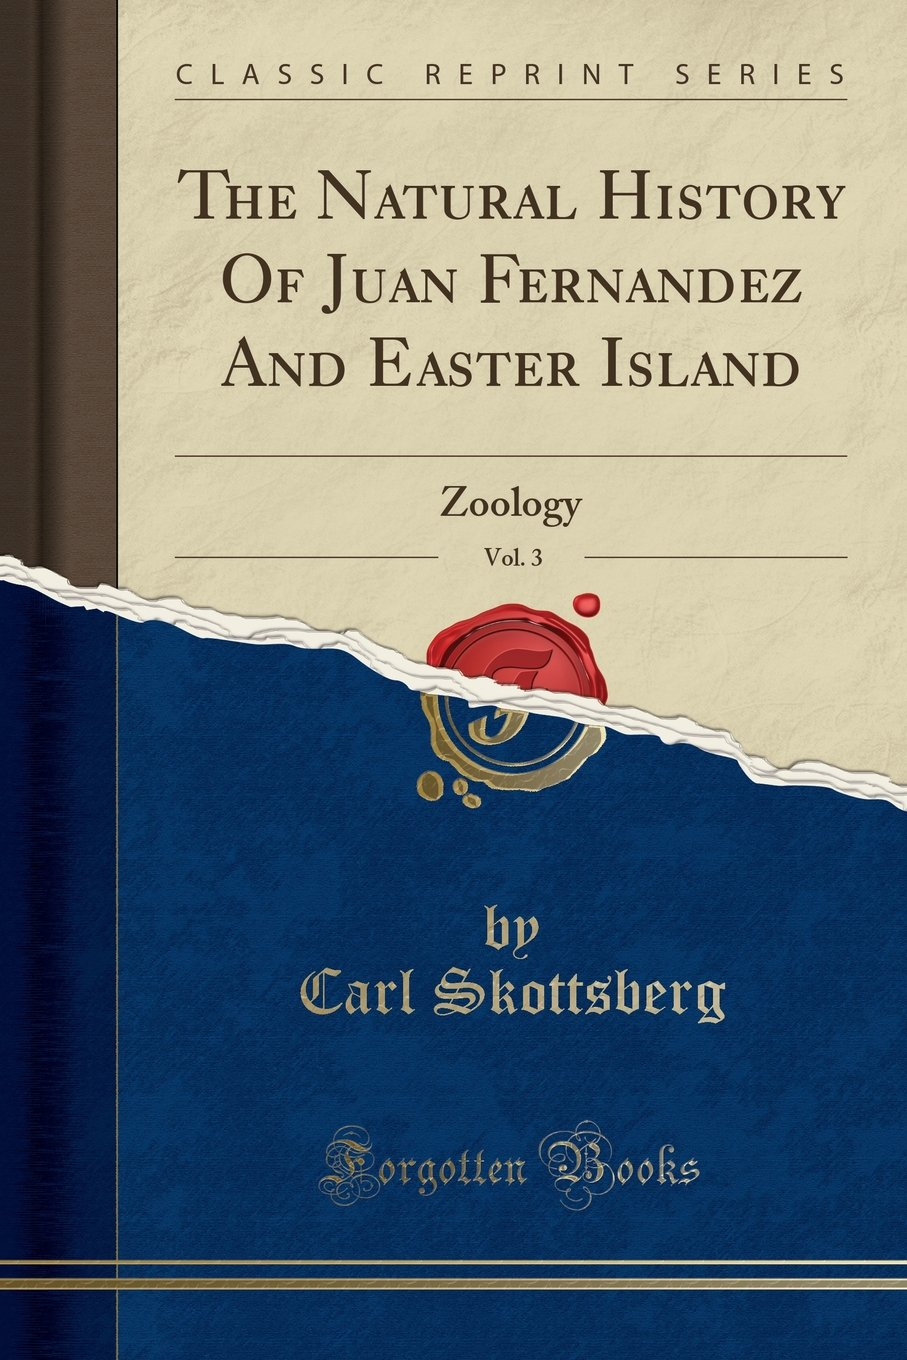 Download The Natural History Of Juan Fernandez And Easter Island, Vol. 3: Zoology (Classic Reprint) (German Edition) ebook